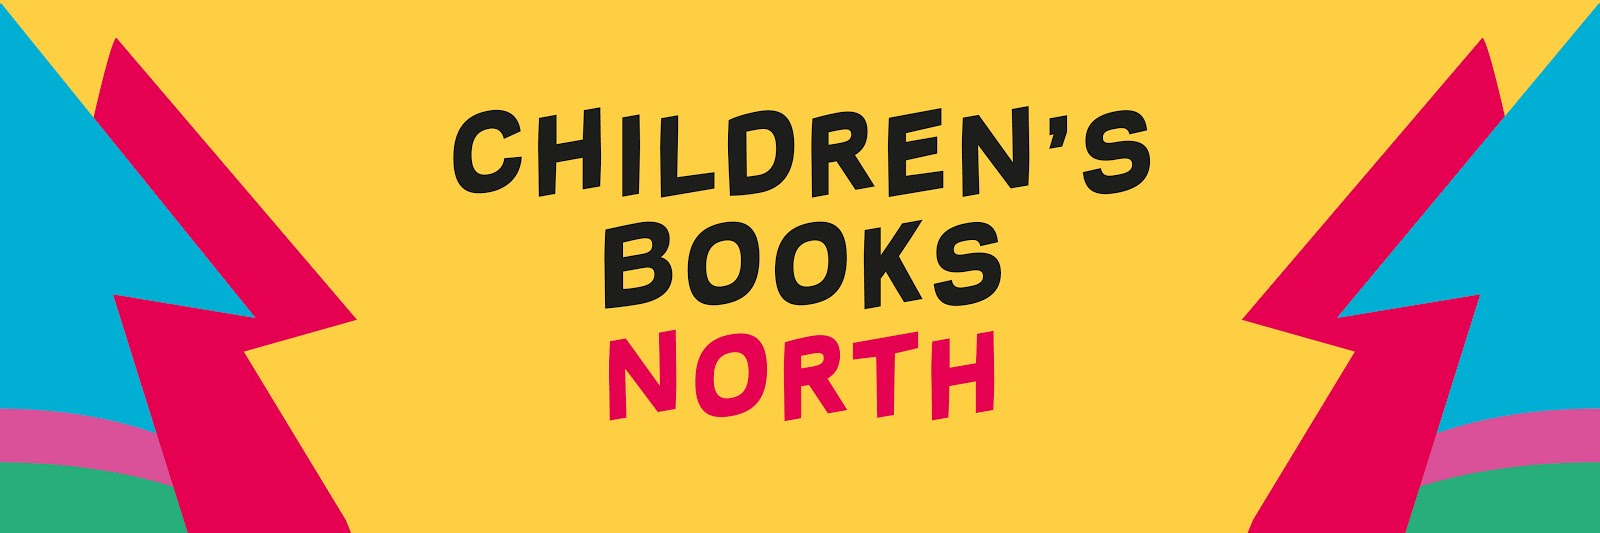 Children's Books North